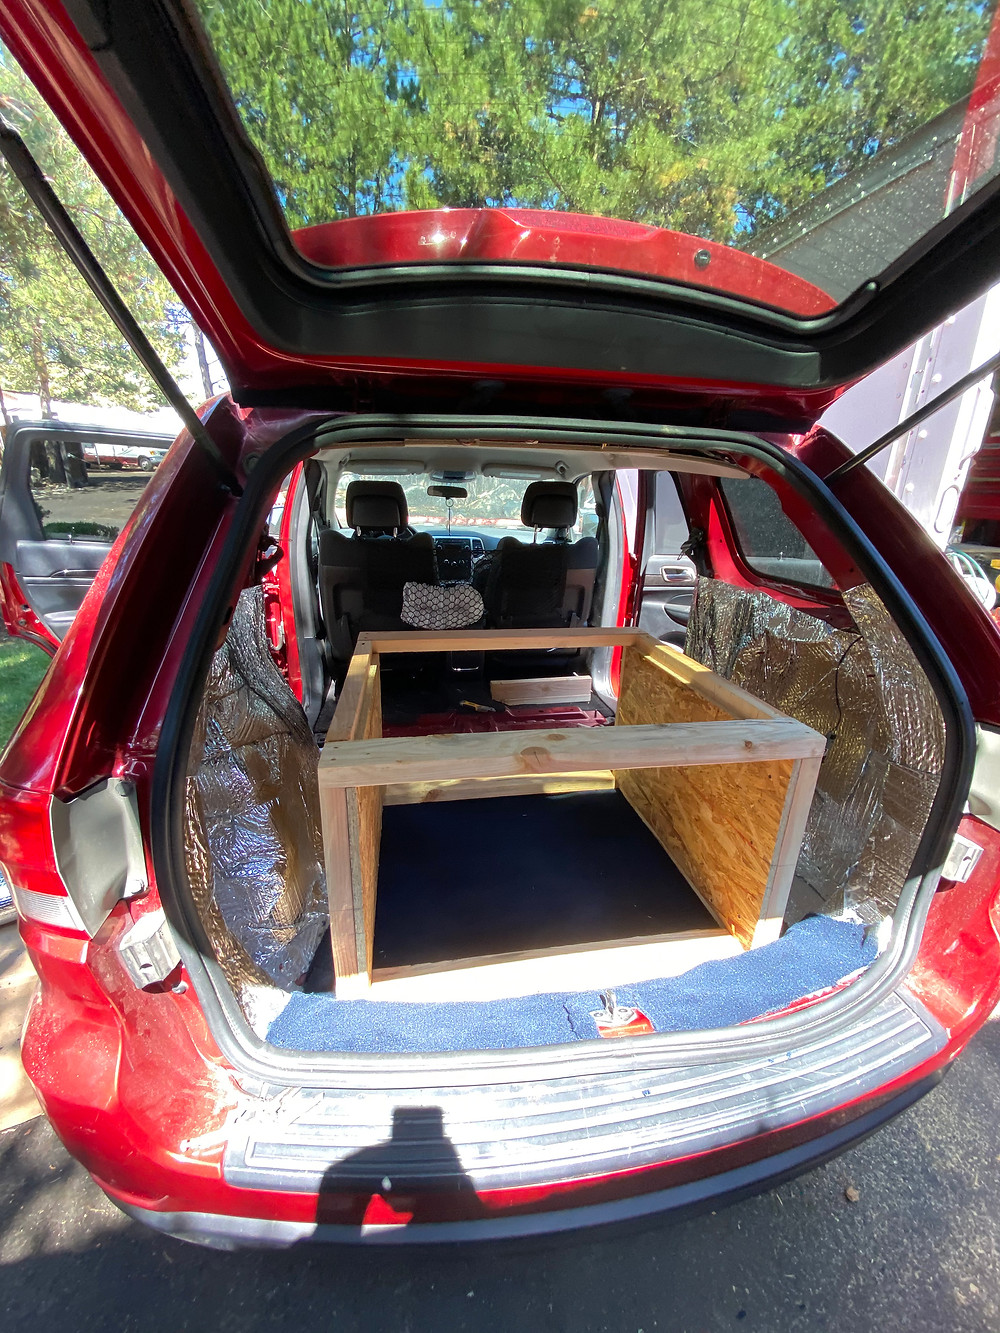 a red 2011 Jeep Grand Cherokee begins its transformation from soccer-mobile to a camper for Van Life. Here, the wooden foundation for the bed is laid down in the back, surrounded by silver insulation